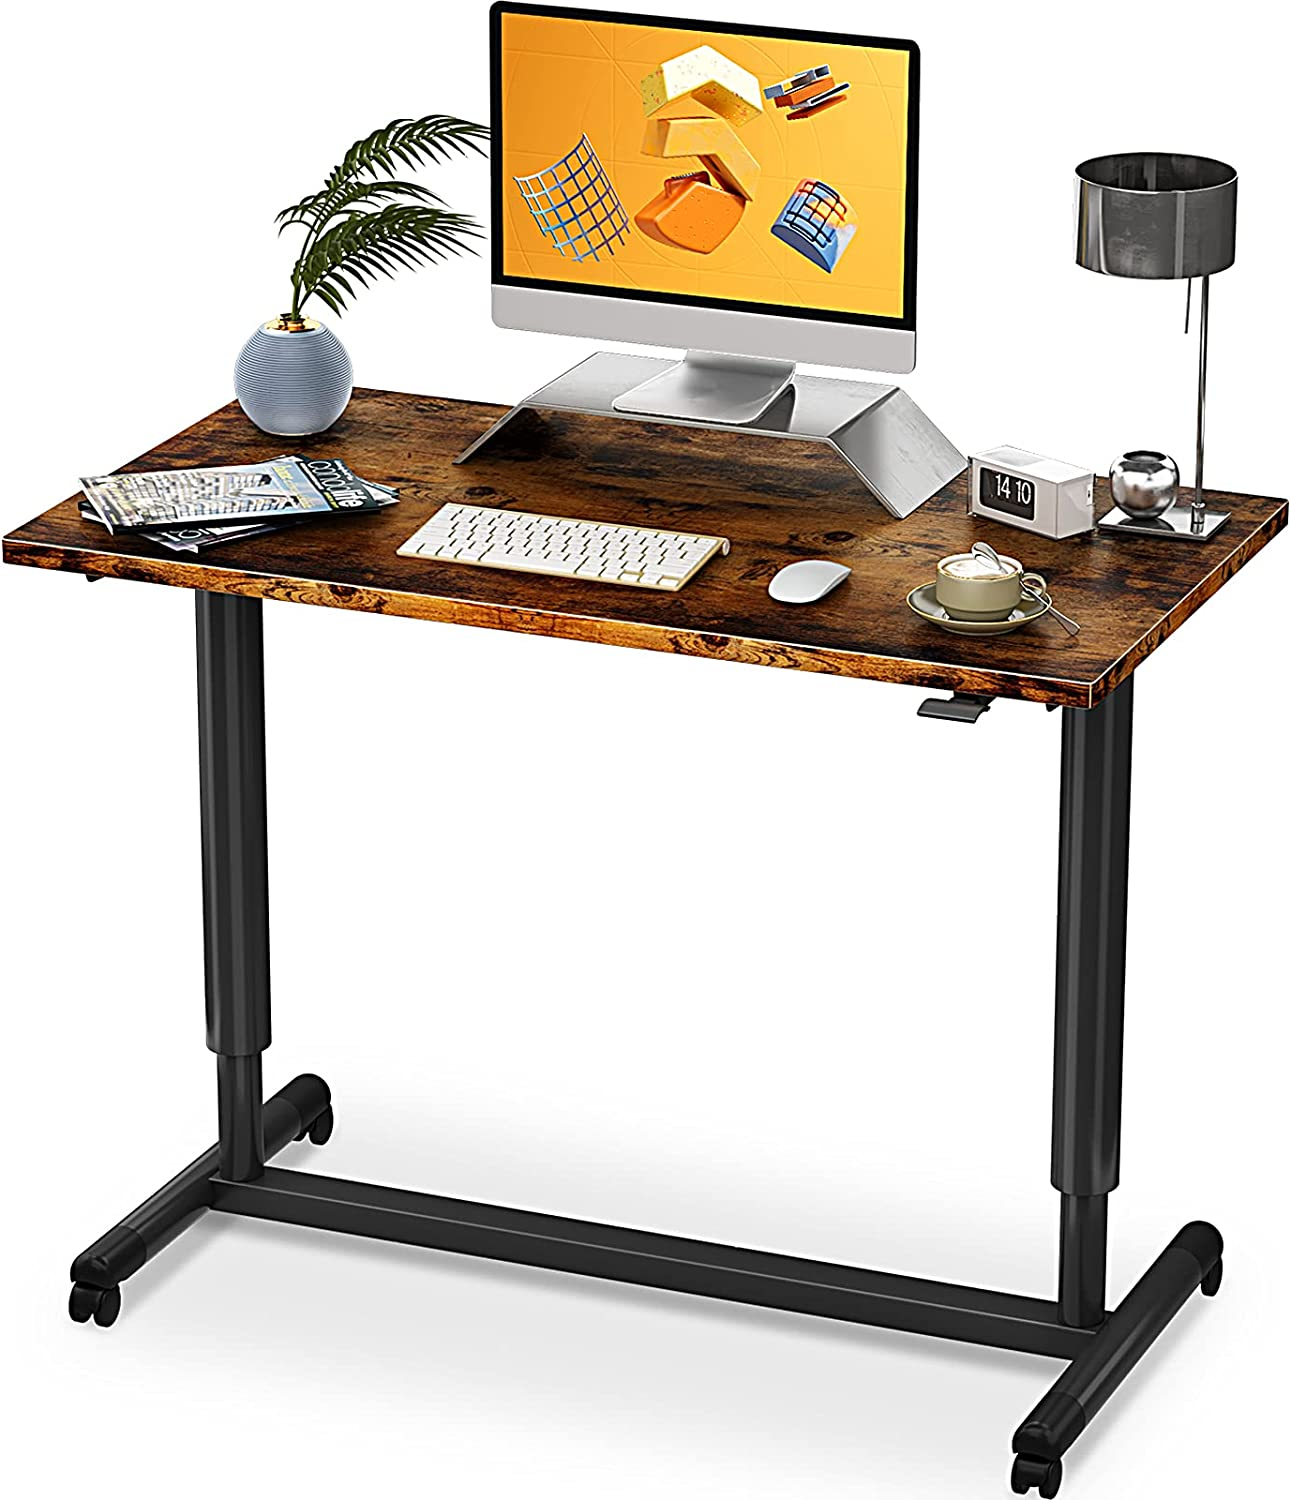 """ODK 40"""" x 24"""" Pneumatic Height Adjustable Mobile Standing Desk $149.99 Coupon"""